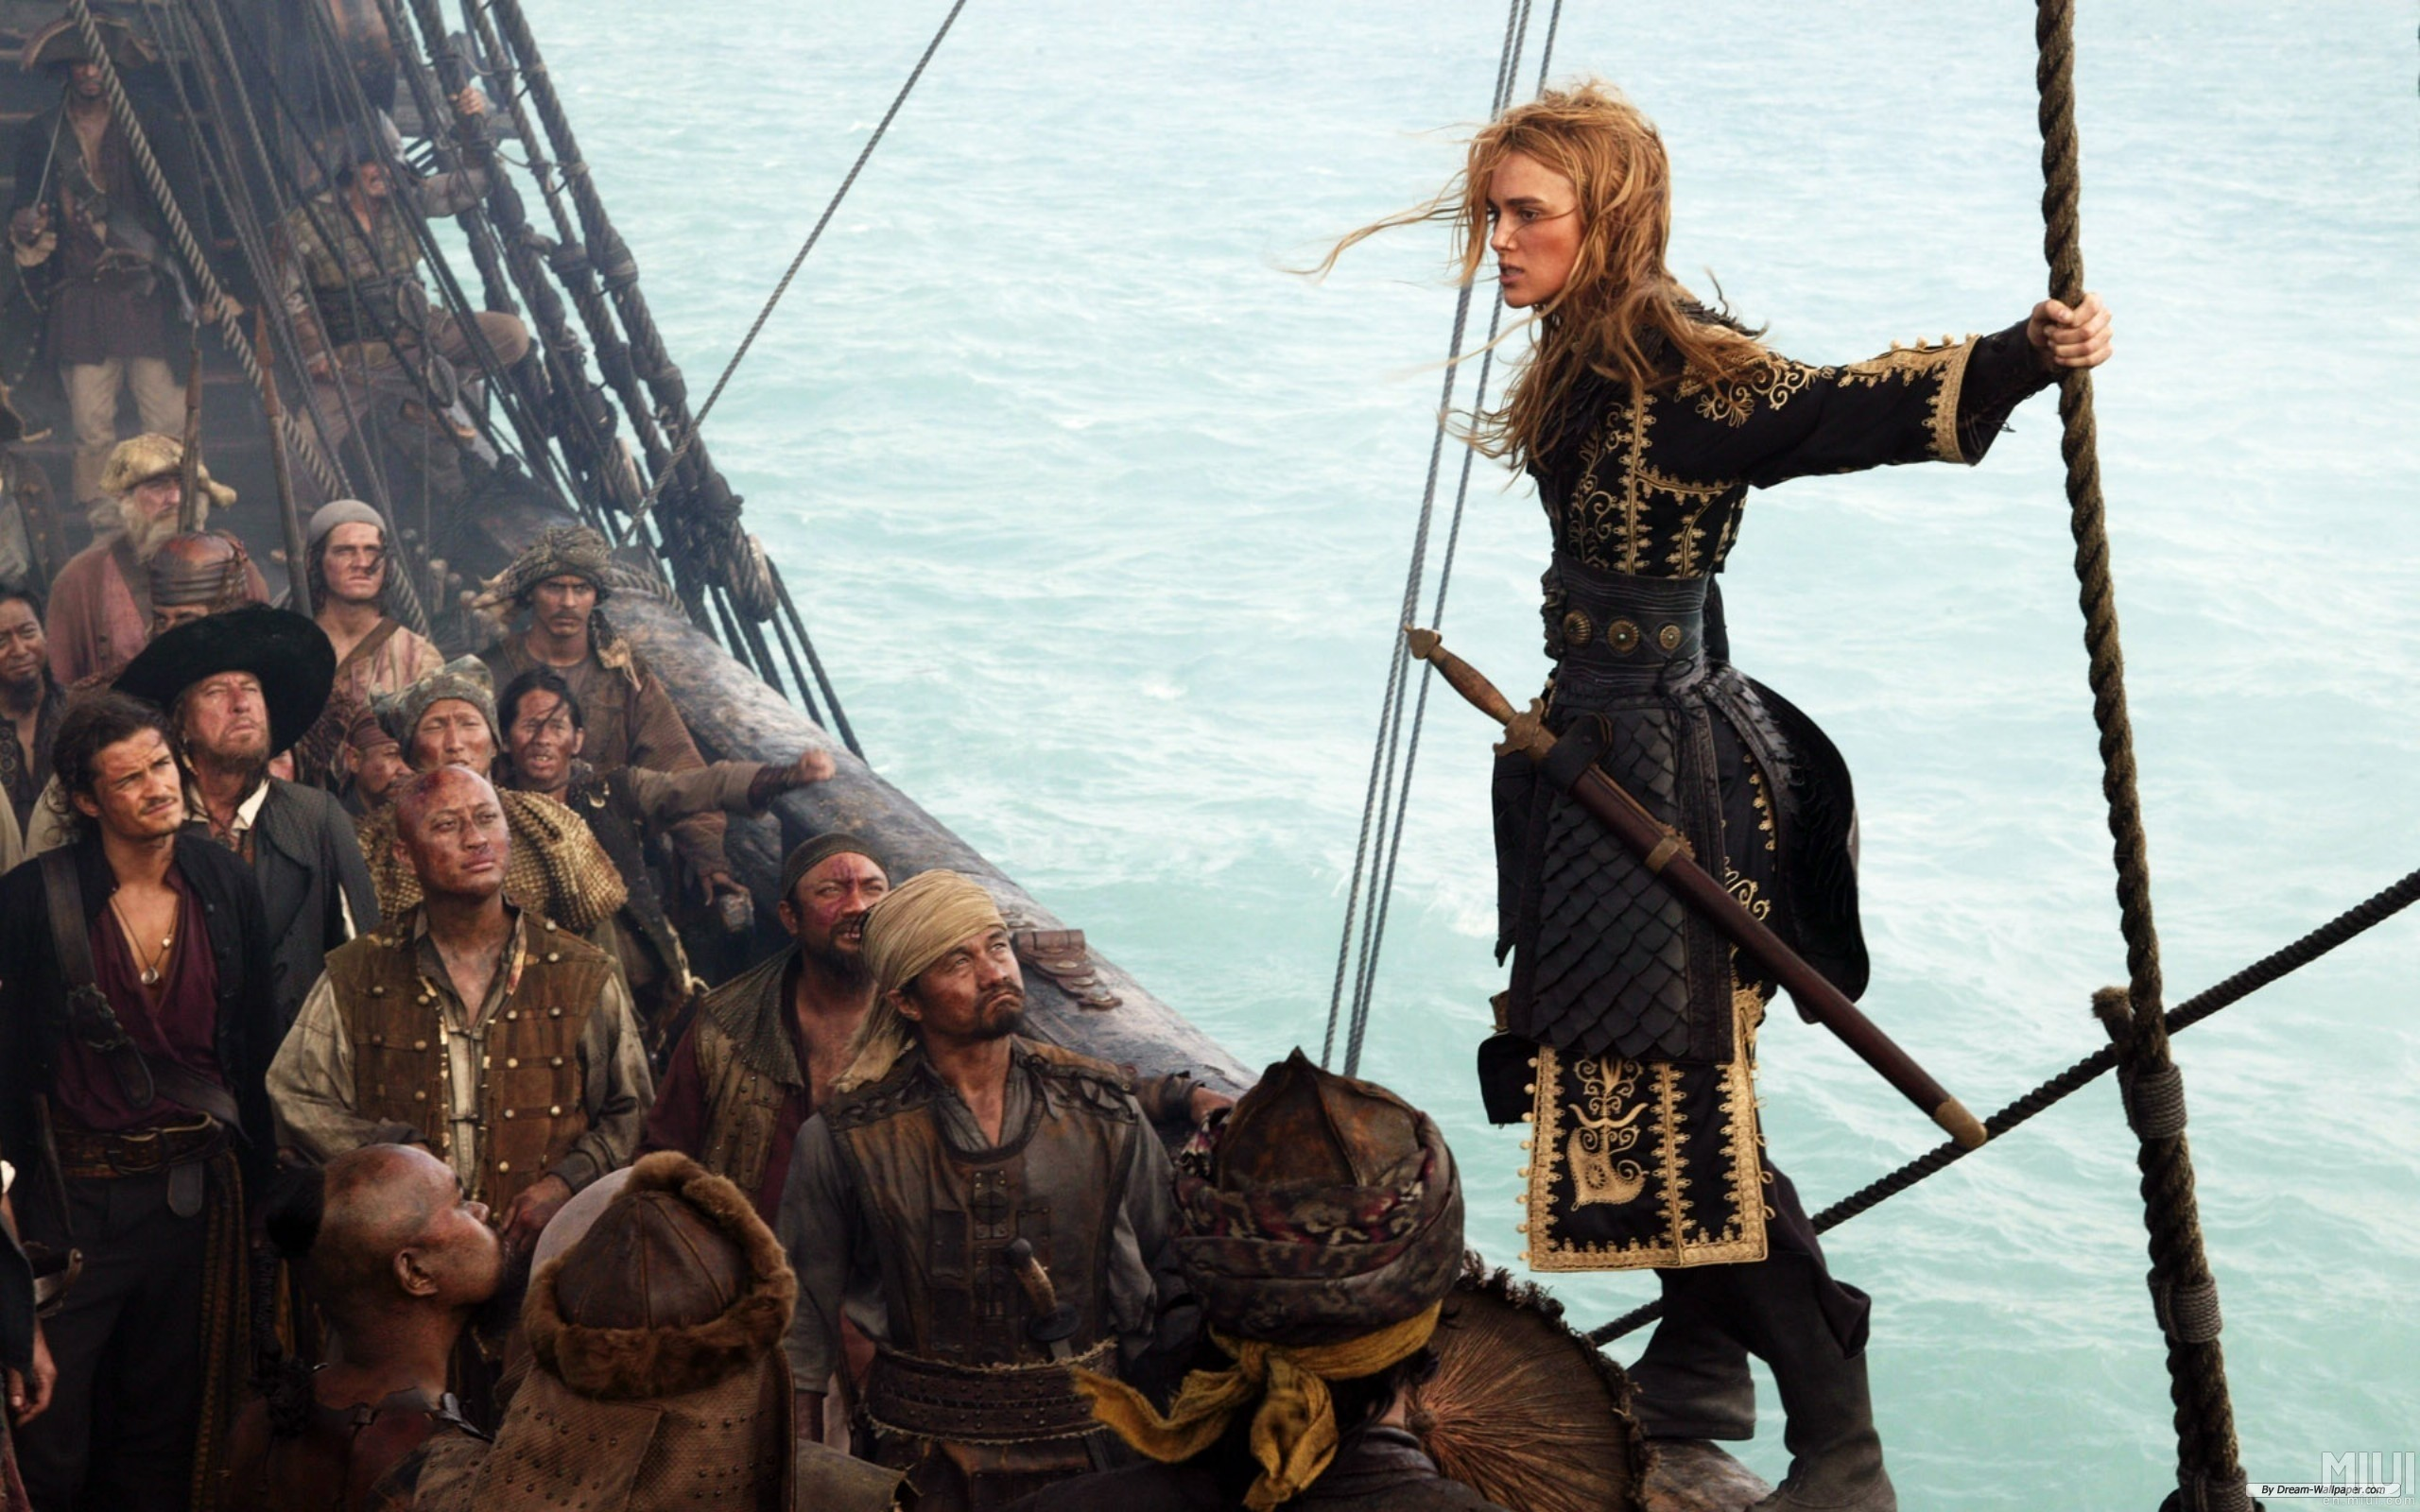 Download All: Pirates Of The Caribbean Wallpapers.rar …